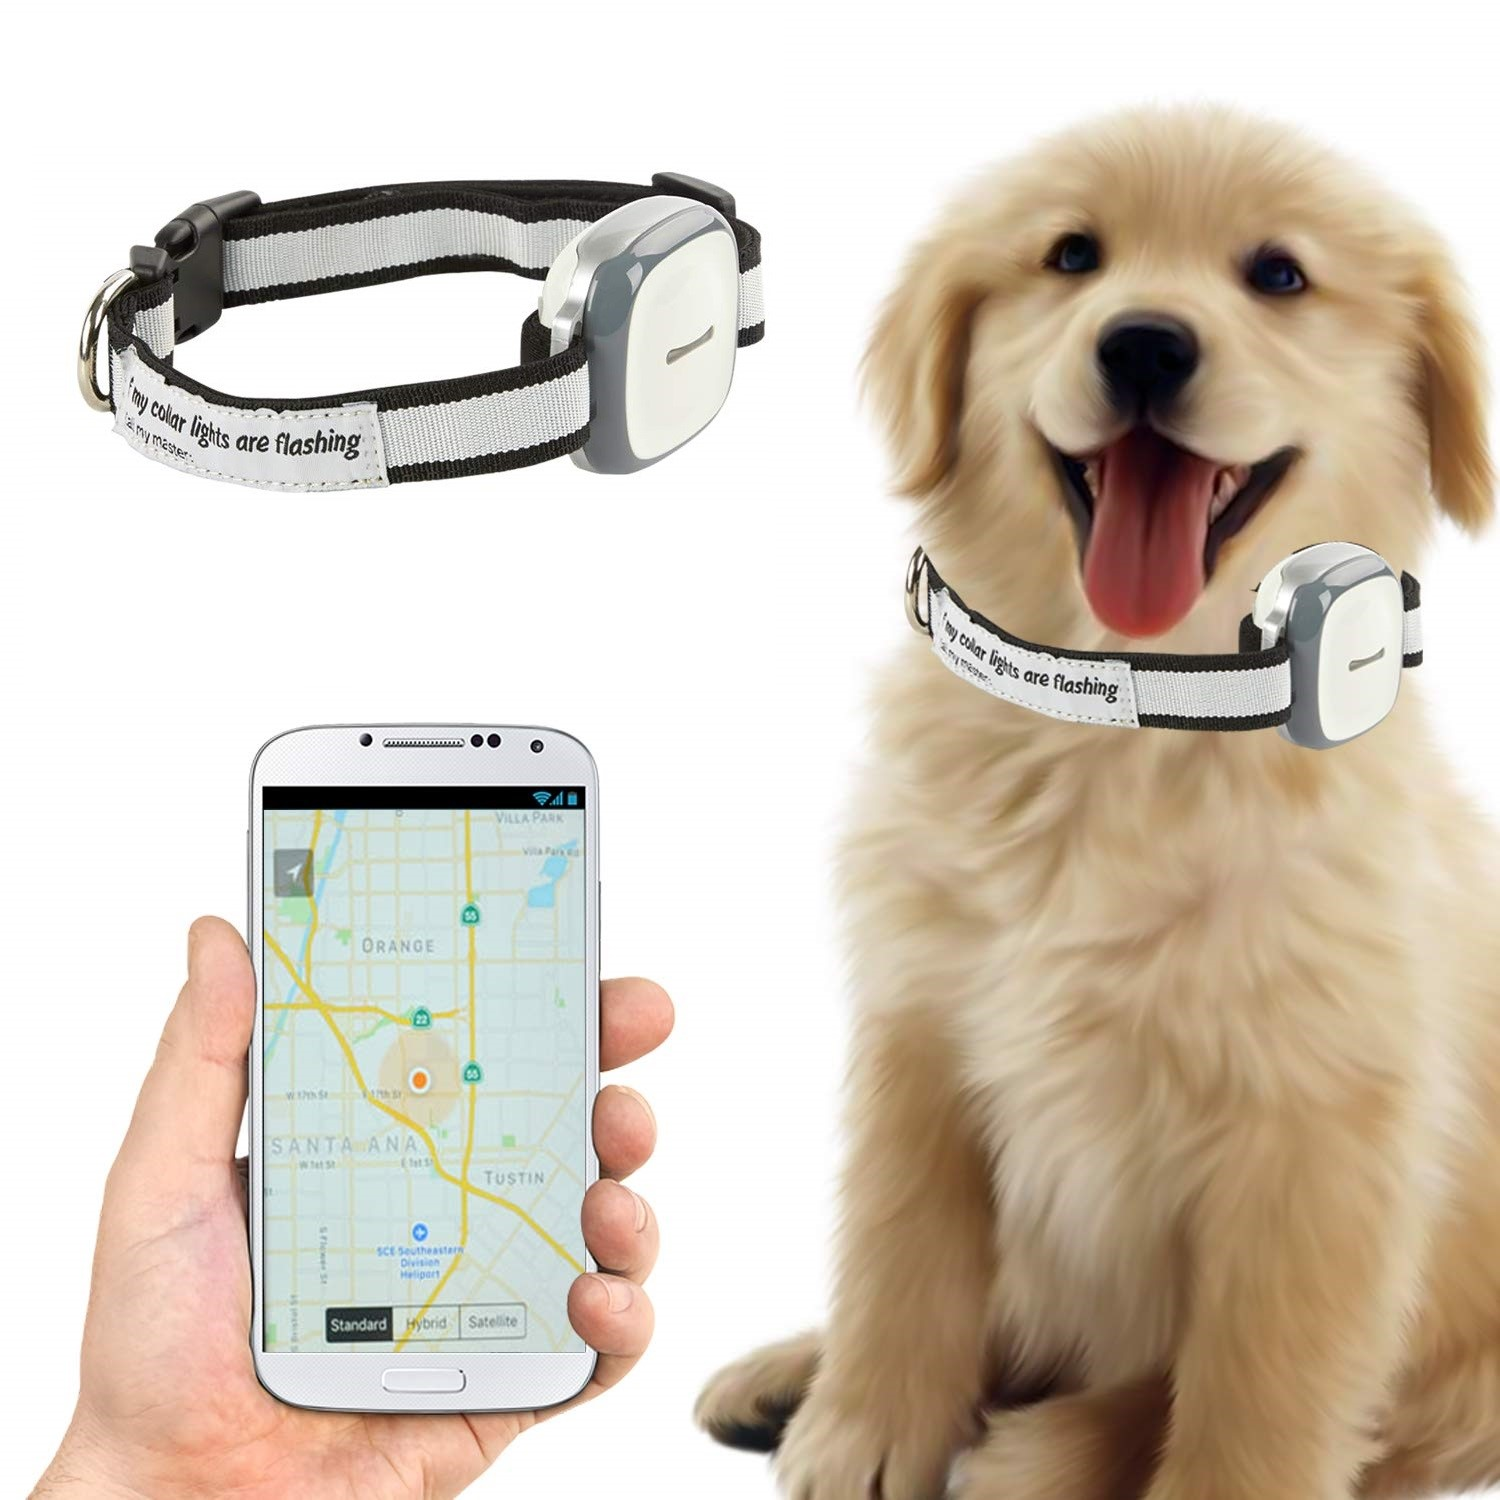 Talis-gps-pet-tracker